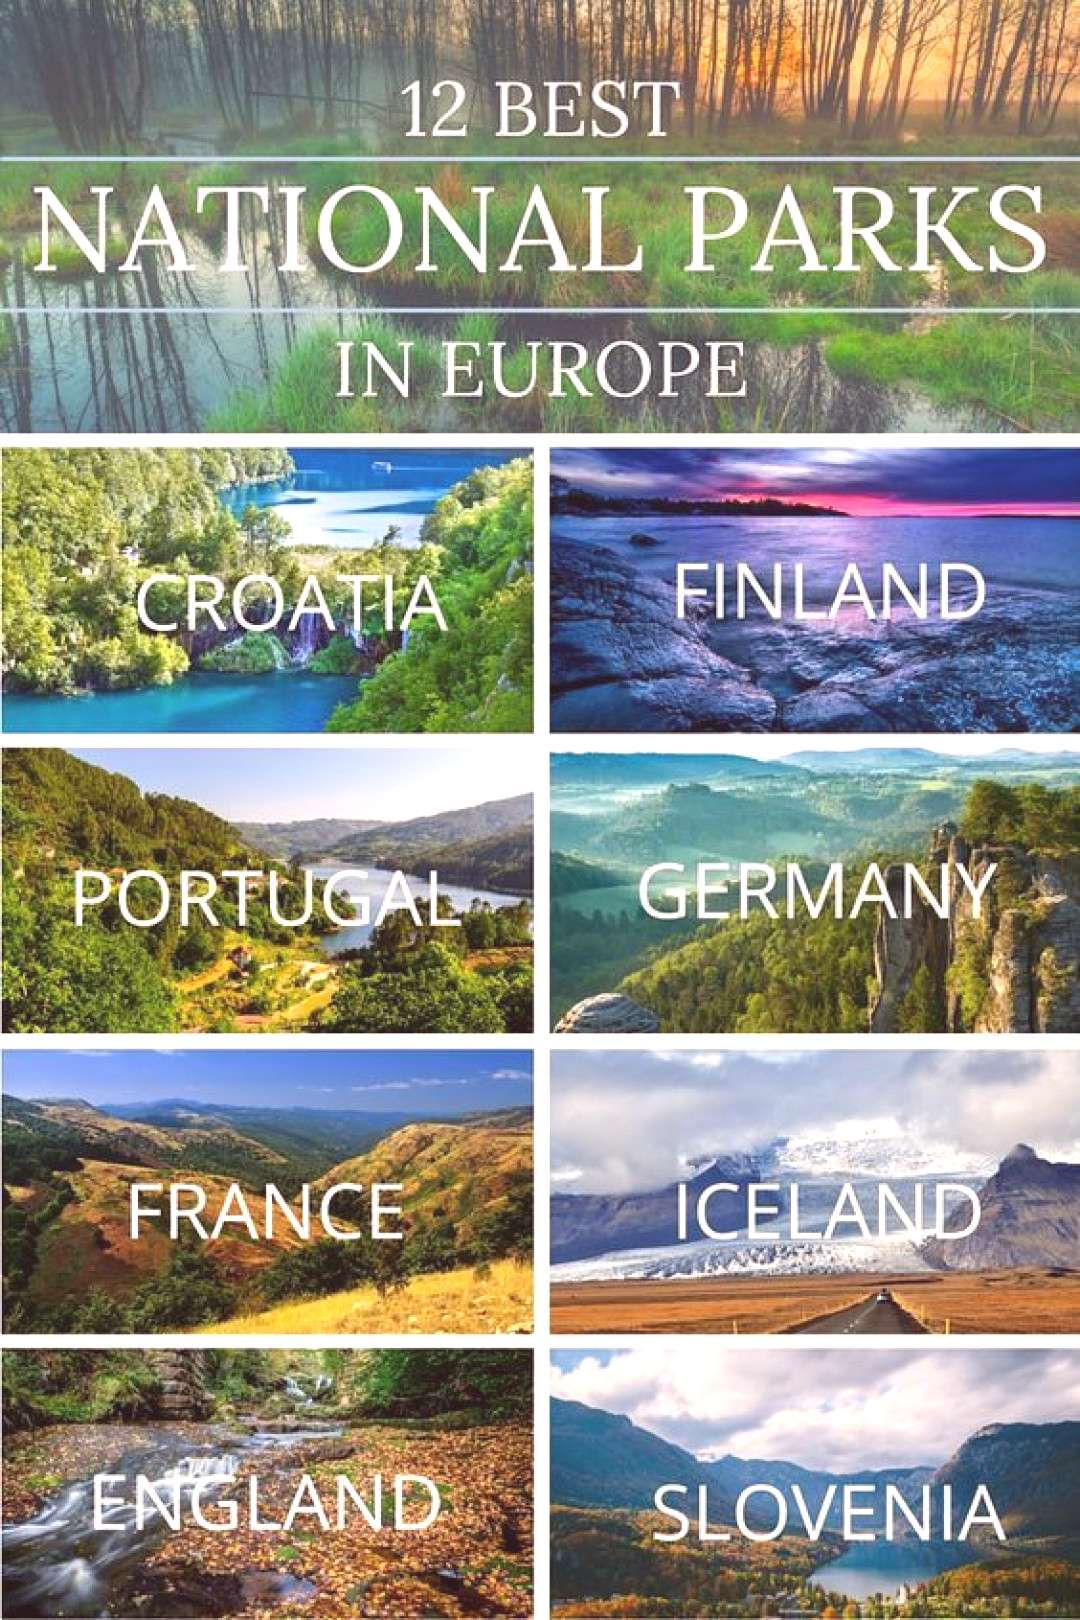 12 of the Best National Parks in Europe The 12 Best National Parks in Europe